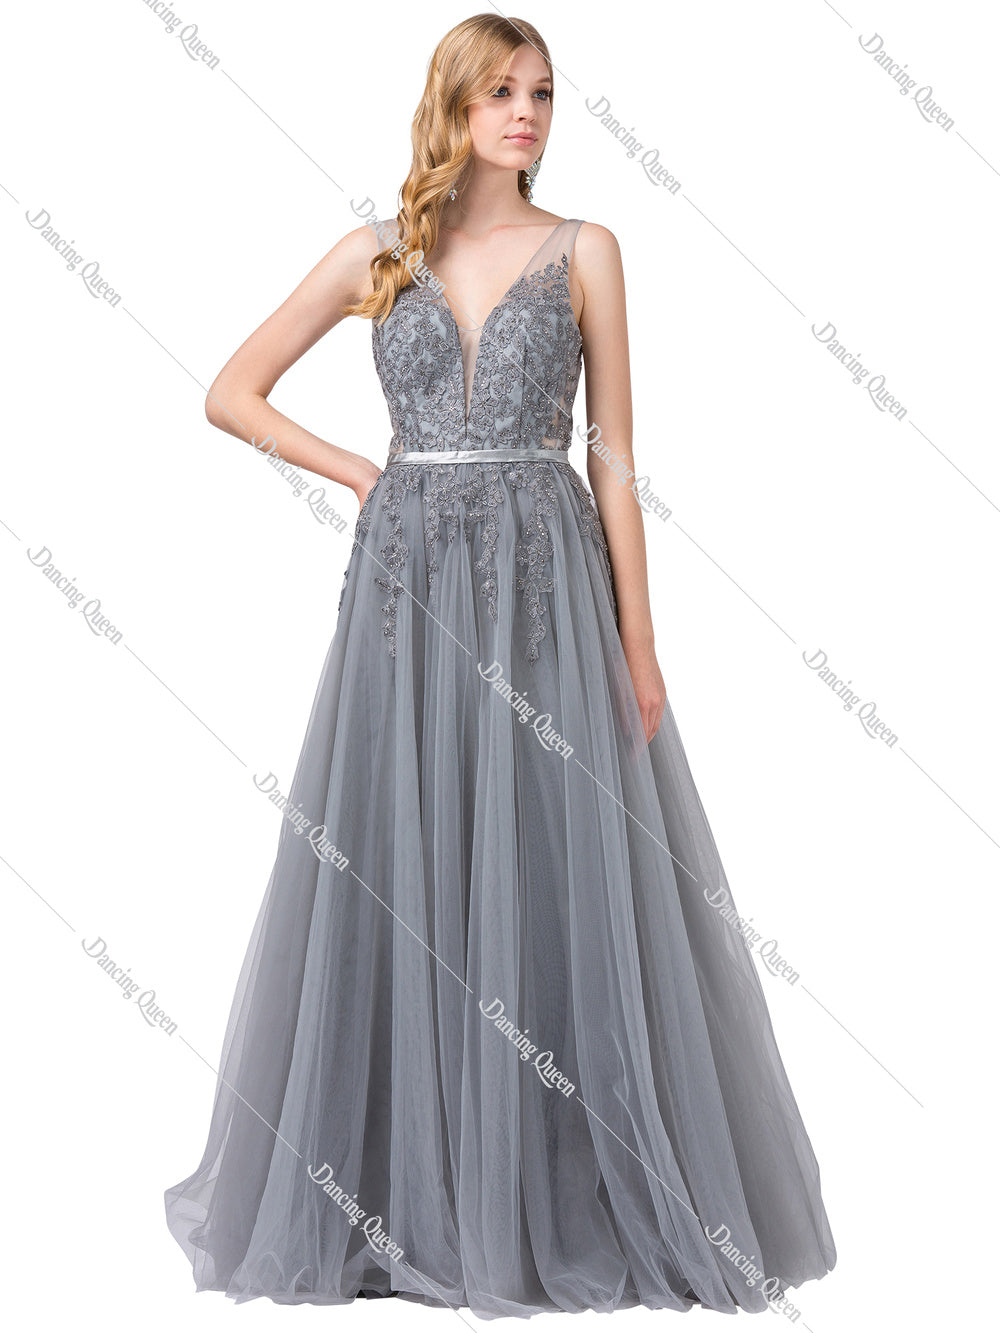 Dancing Queen DQ 2596 - A-line embroidered Bodice ballgown with satin belt and tulle Skirt - Diggz Prom